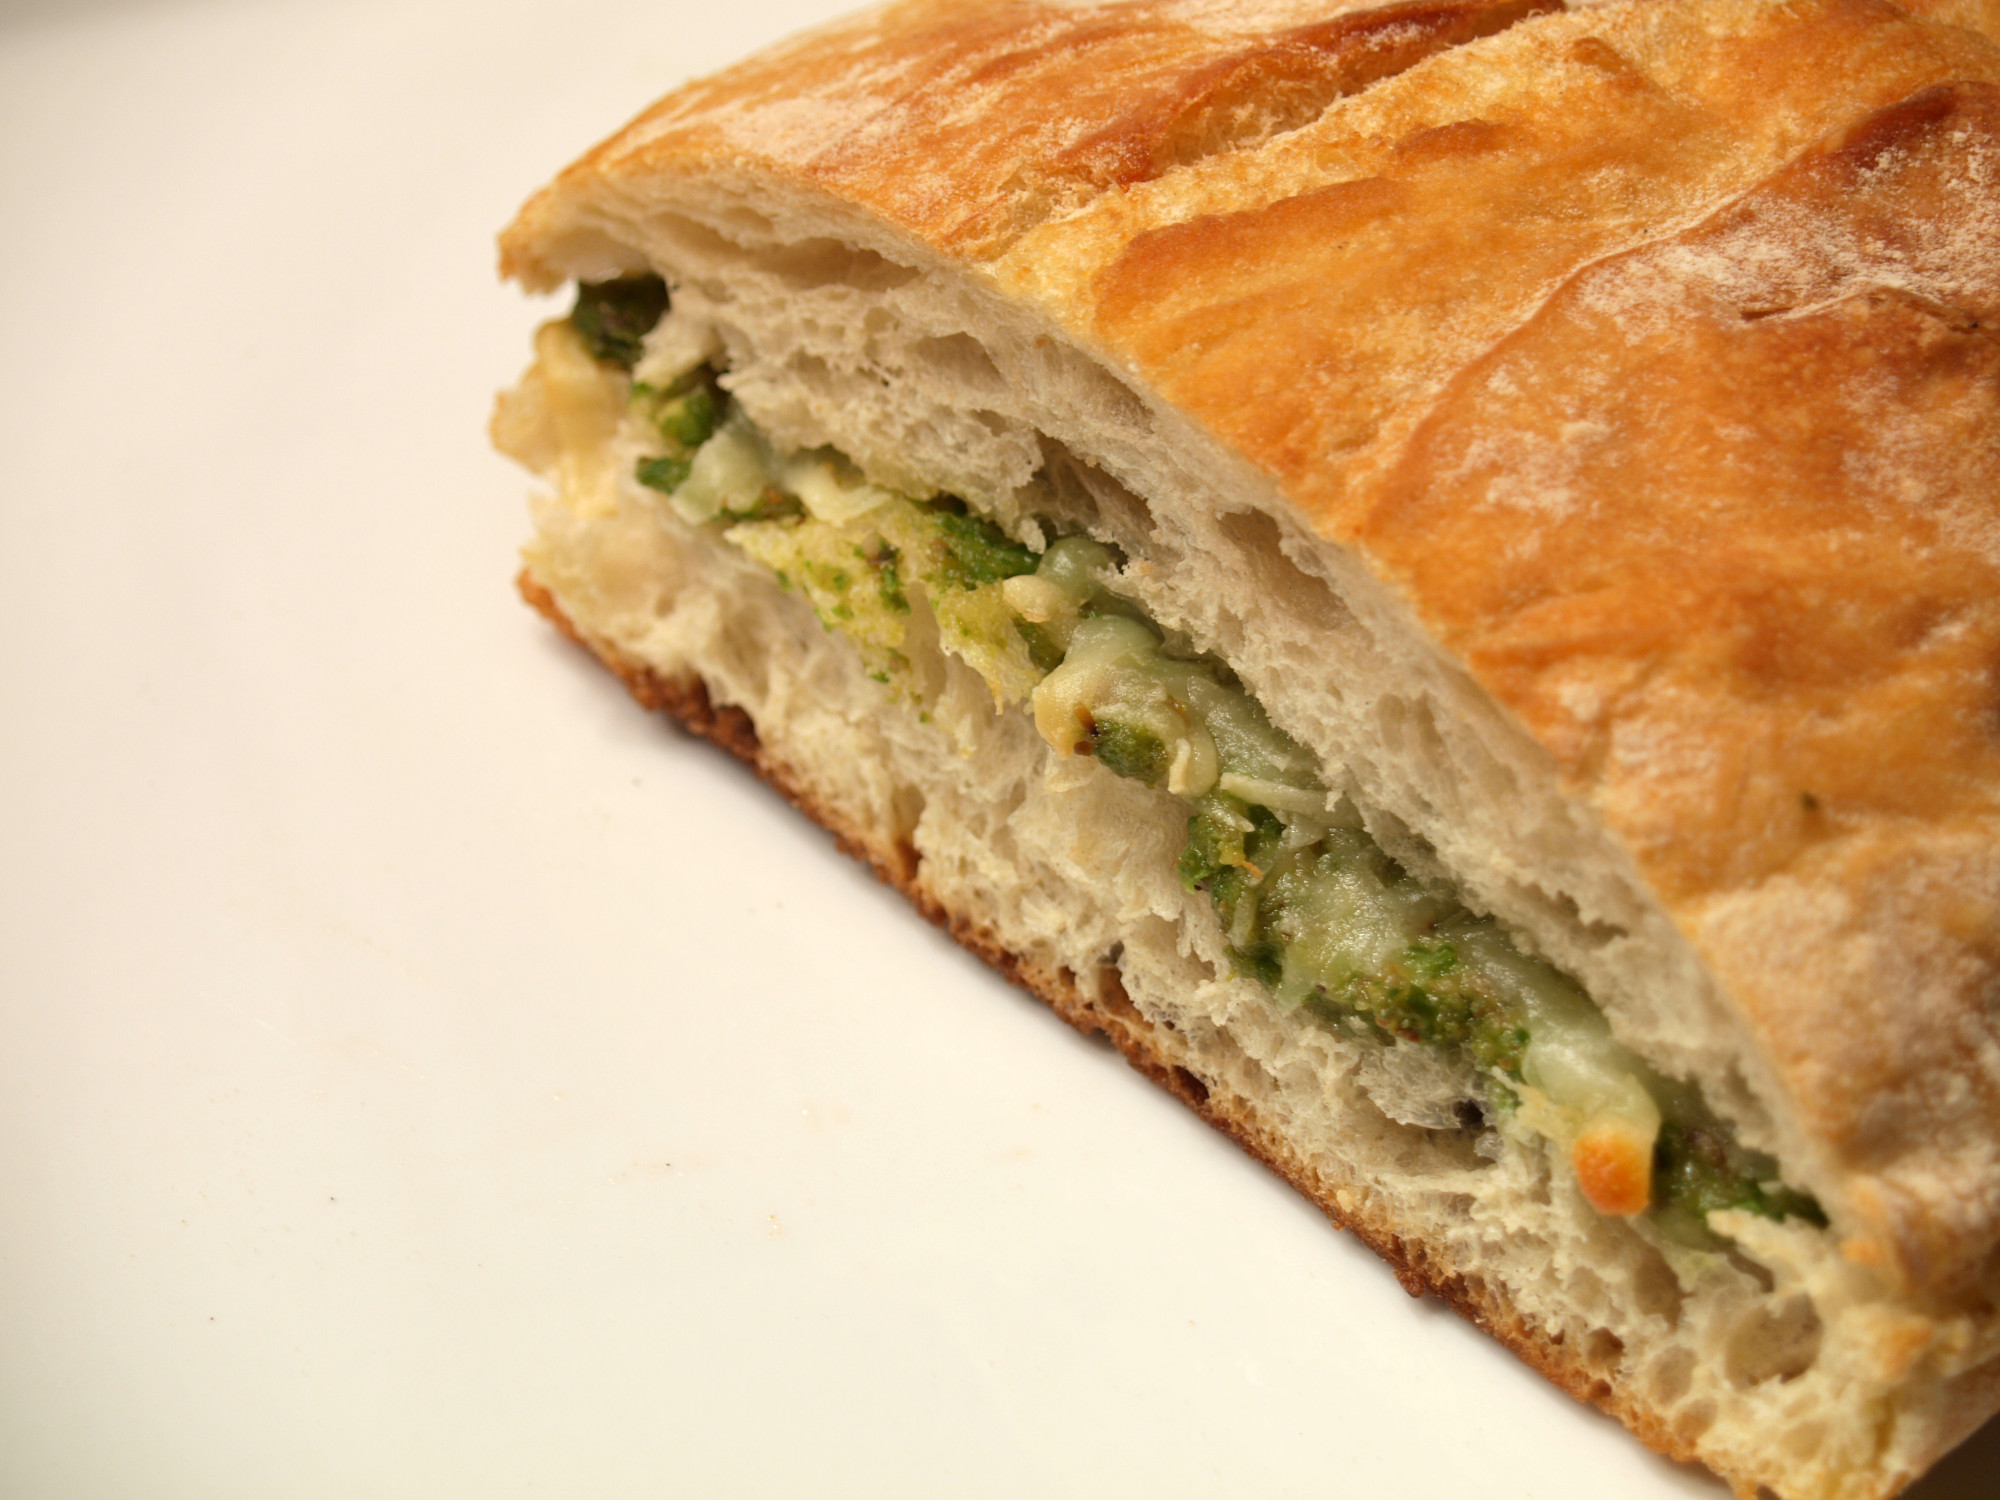 The Atlantics Pea Pesto Grilled Cheese